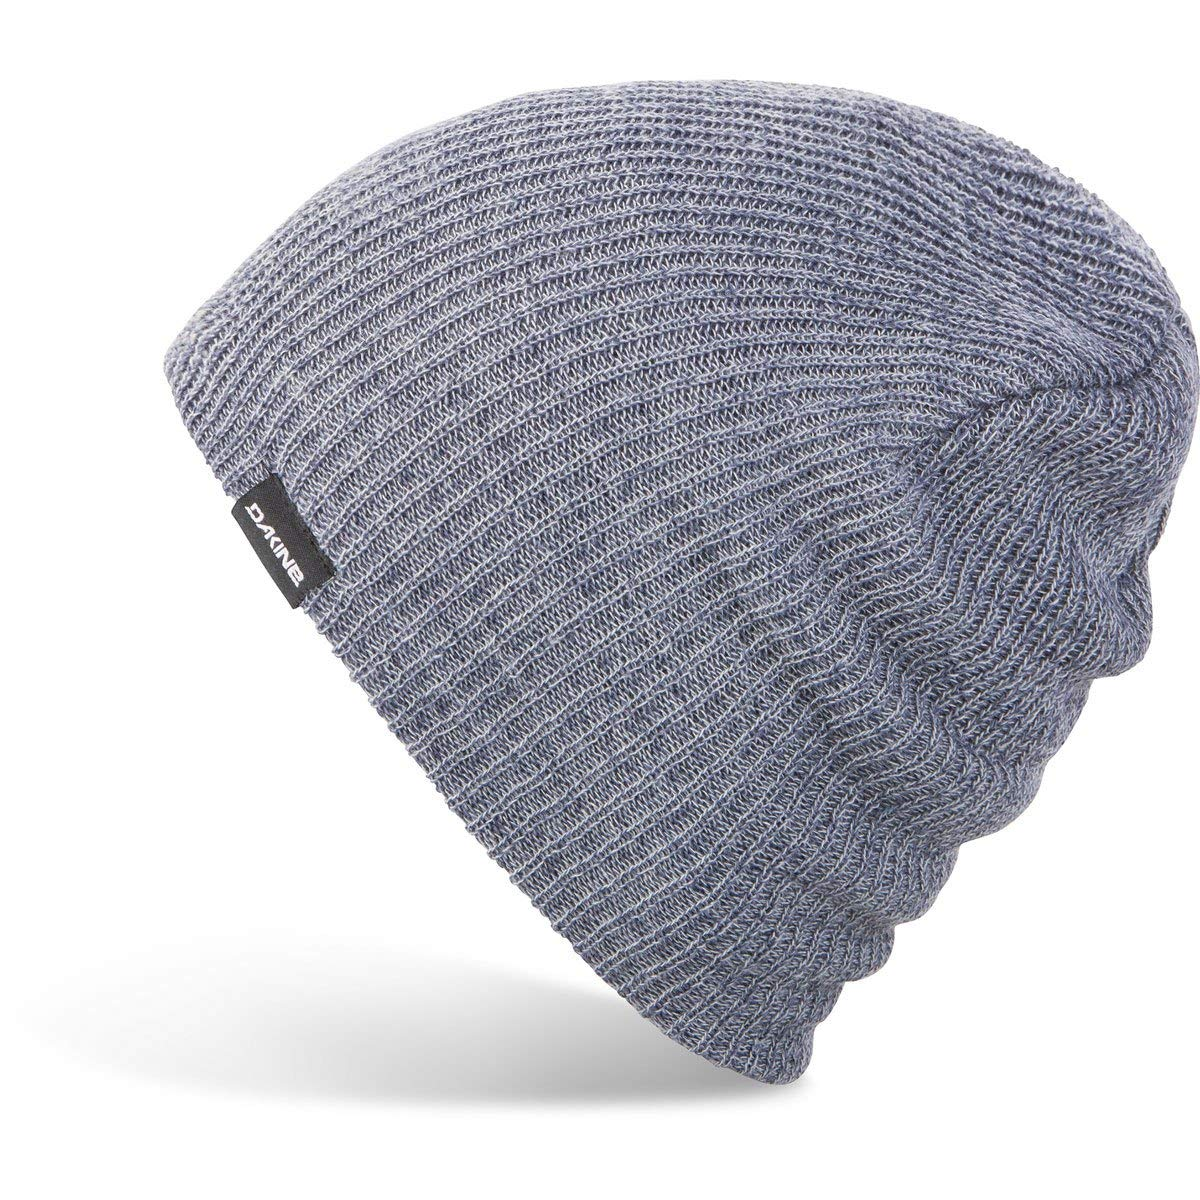 732874a4451 Get Quotations · Dakine Tall Boy Heather Beanie